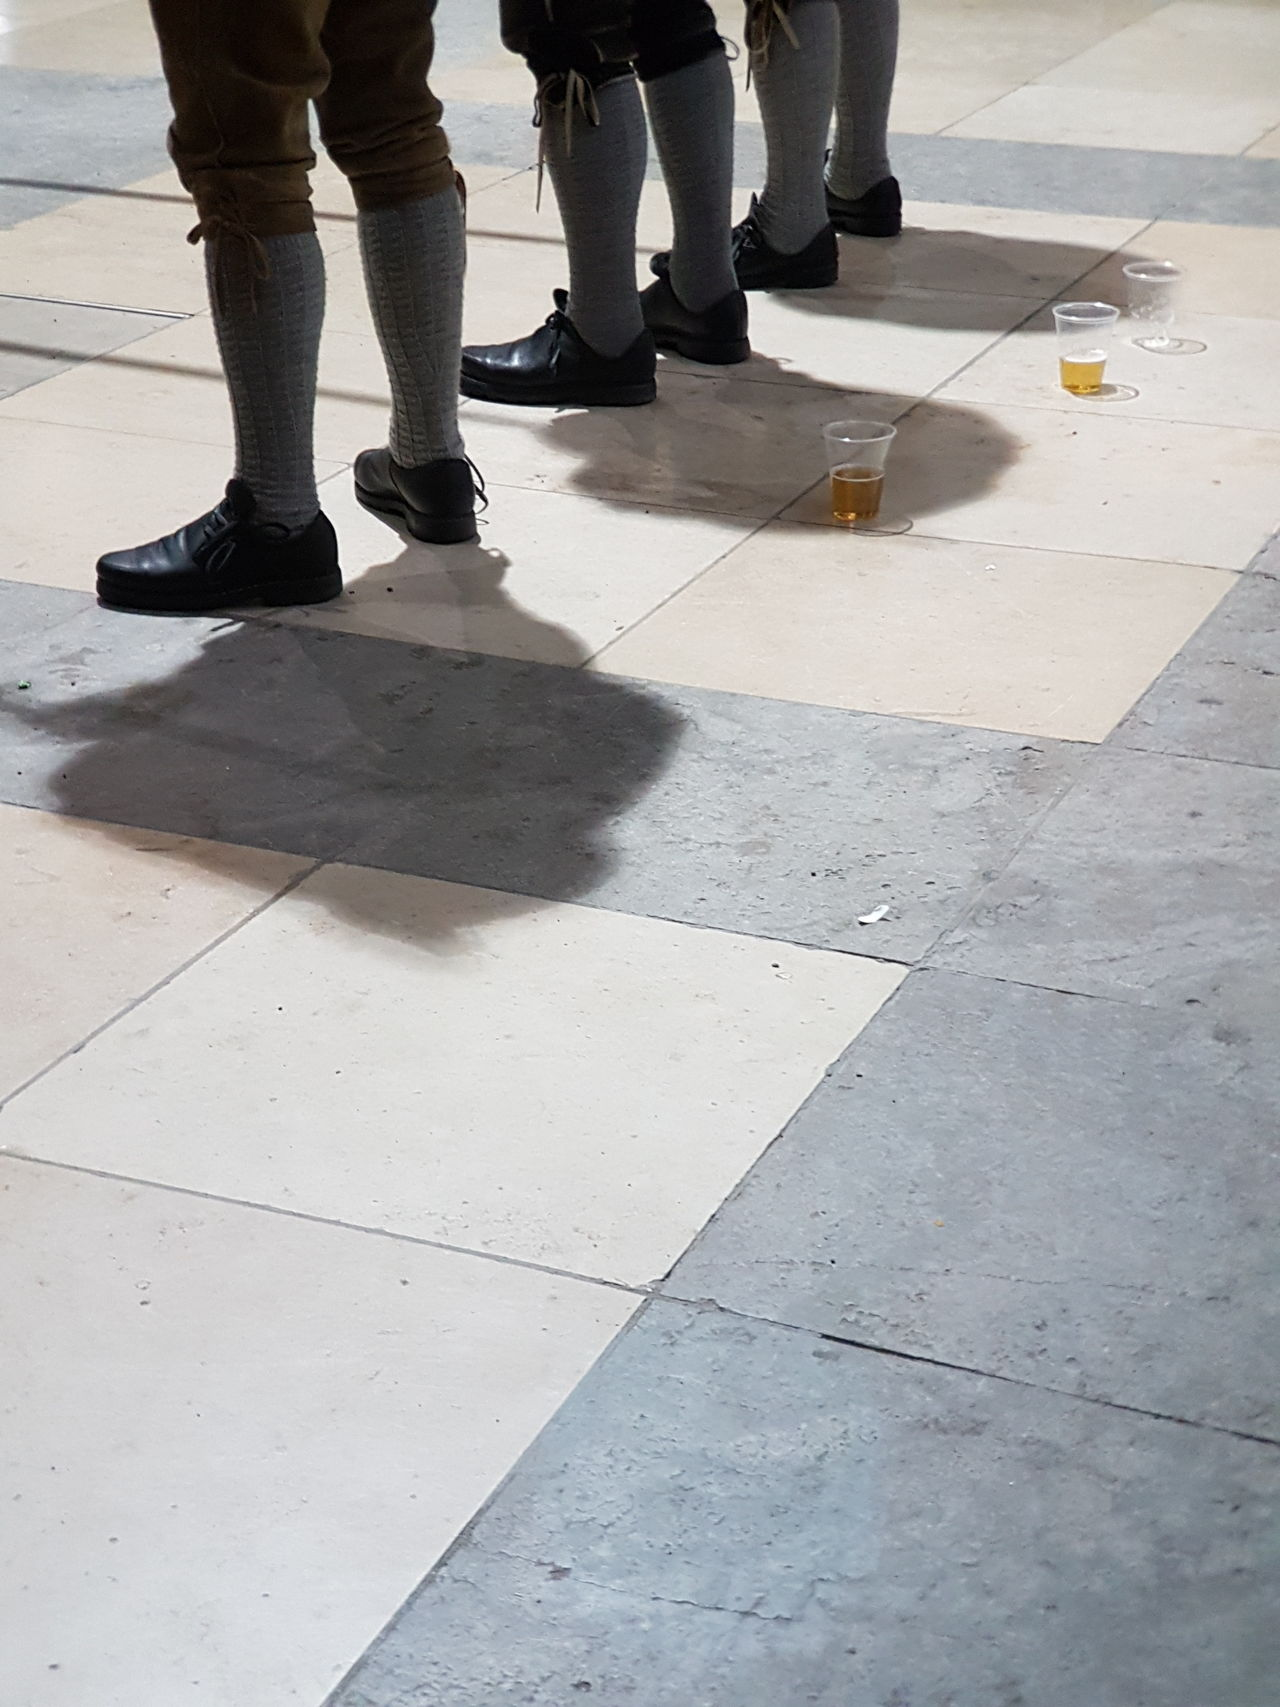 Human Body Part Human Leg Standing Men People Only Men Backgrounds Drink Drinking Waiting In Line Wait Waiting Stay Glass Party Time Friends Together Together Forever 3 People Standing Together Standing Standing Still Still Standing Still Standing And Strong Adults Only Wait For